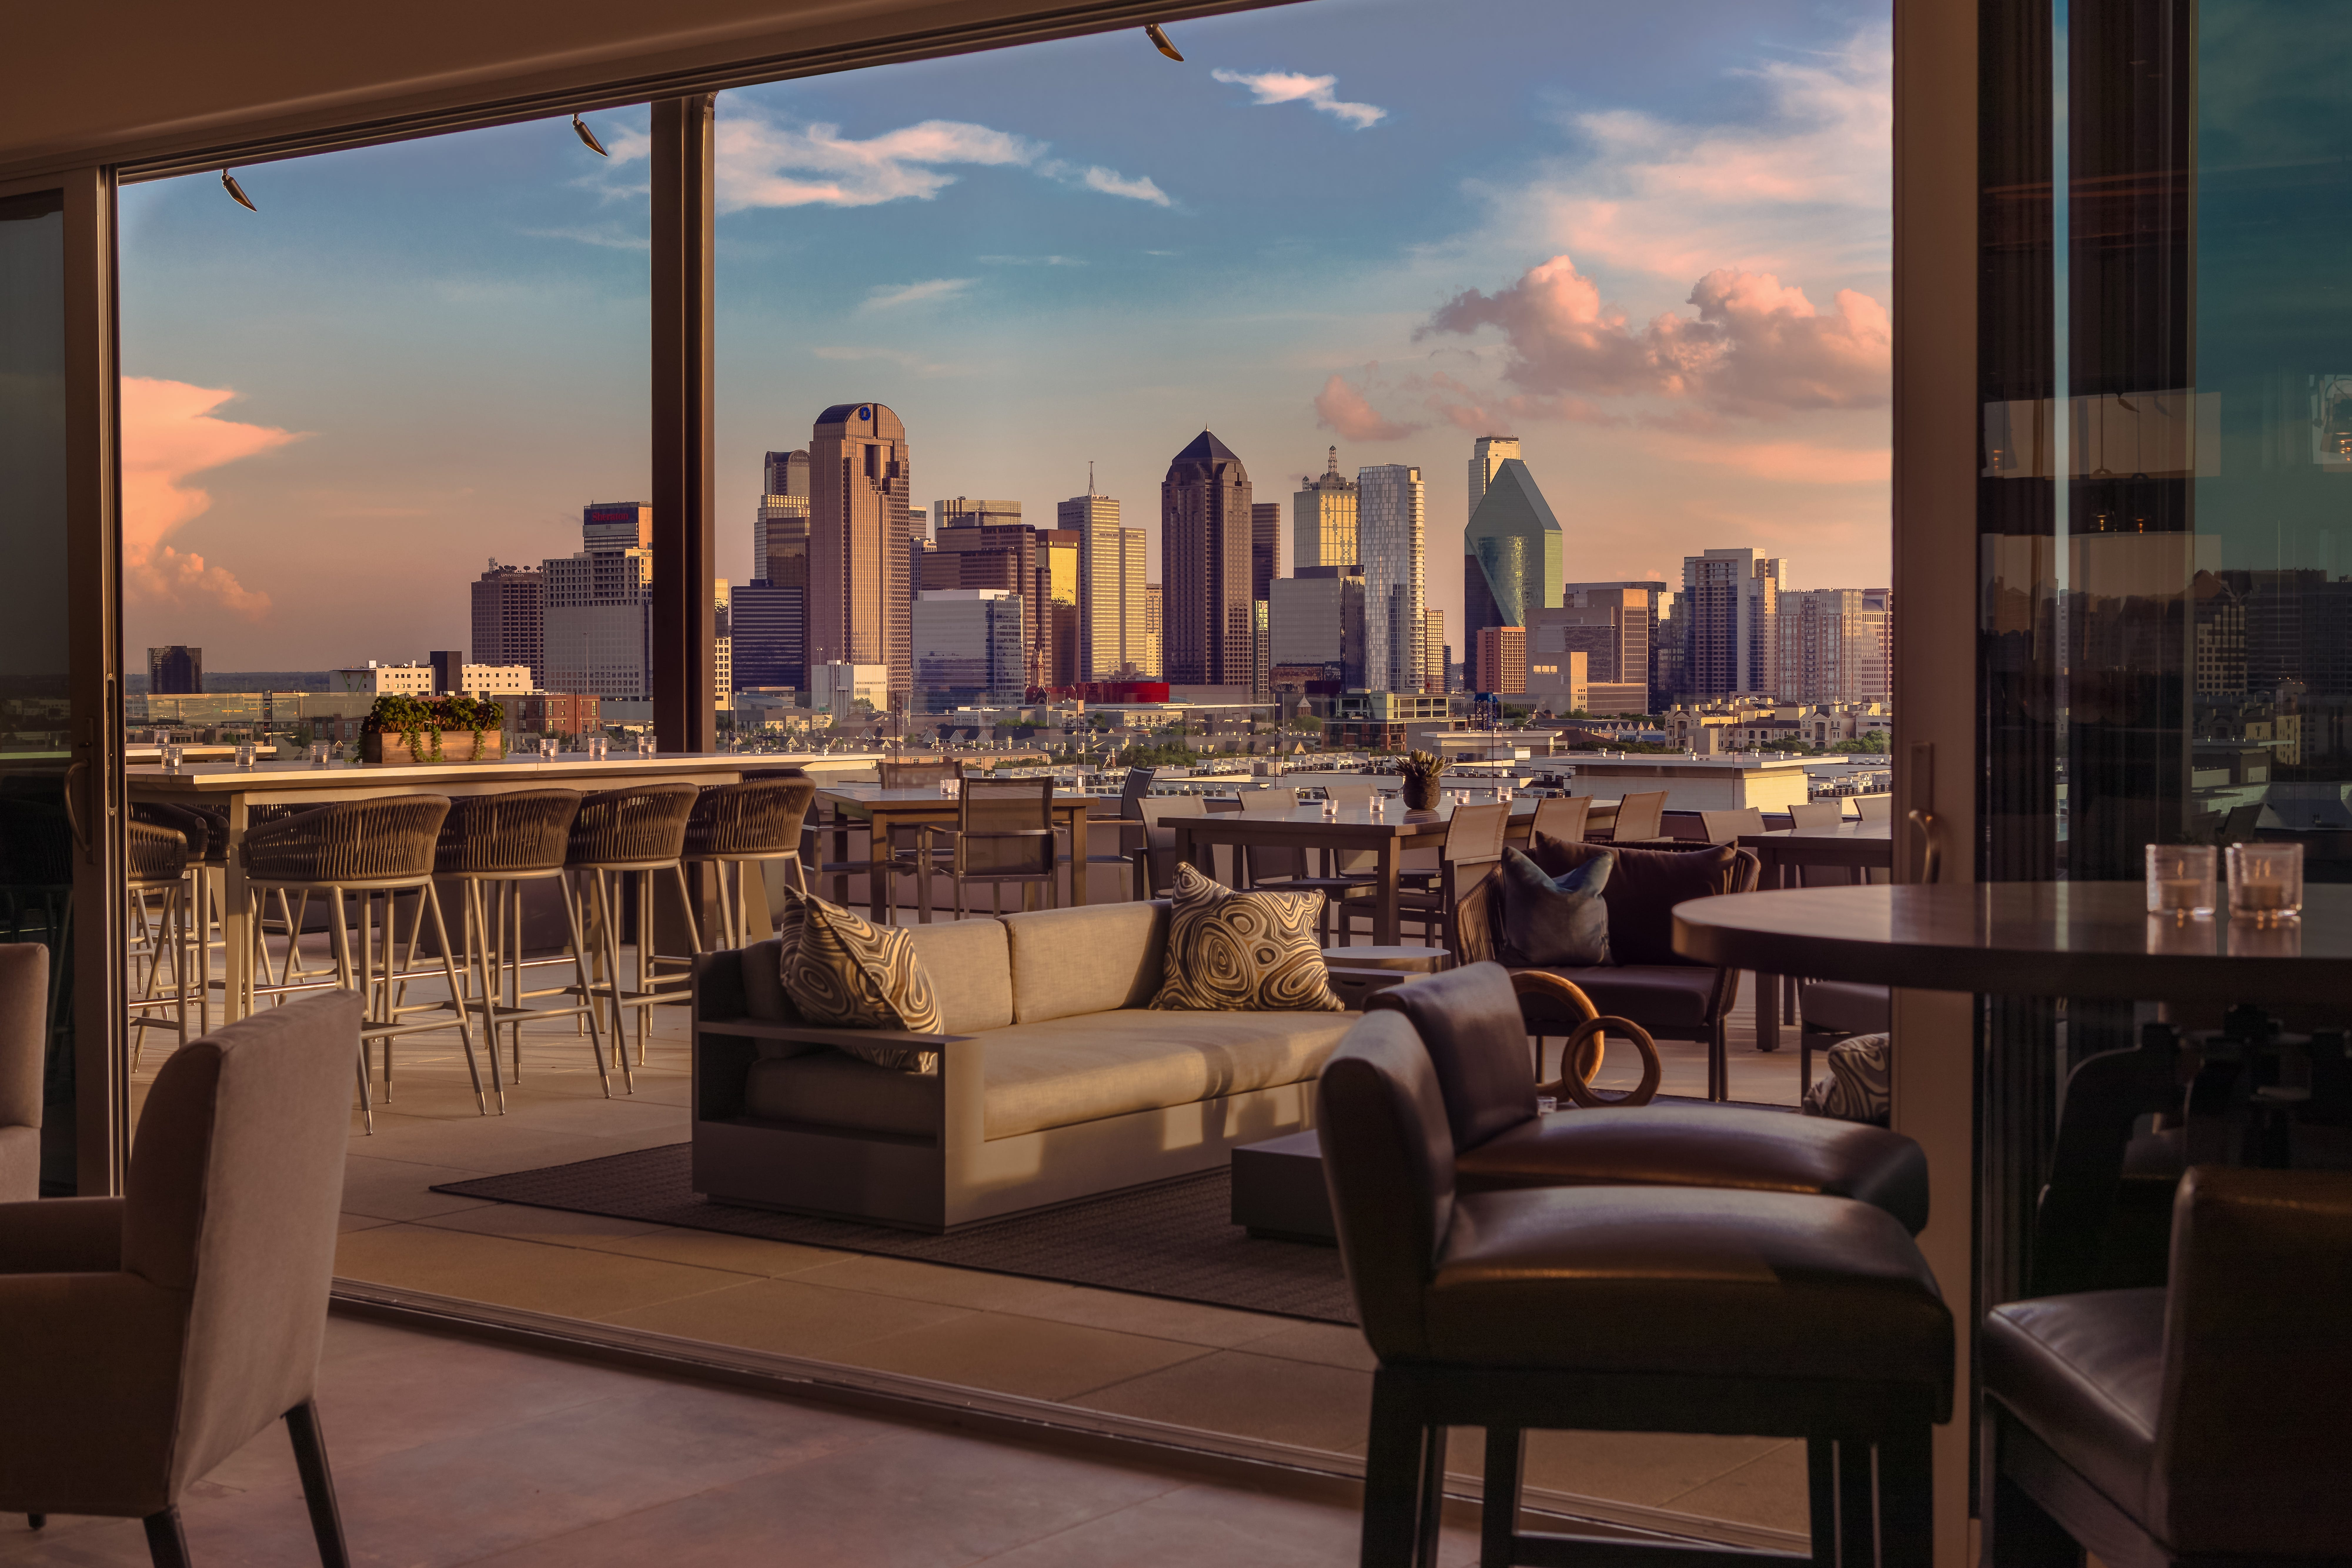 Hotels reach new heights with rooftop bars   USA Today